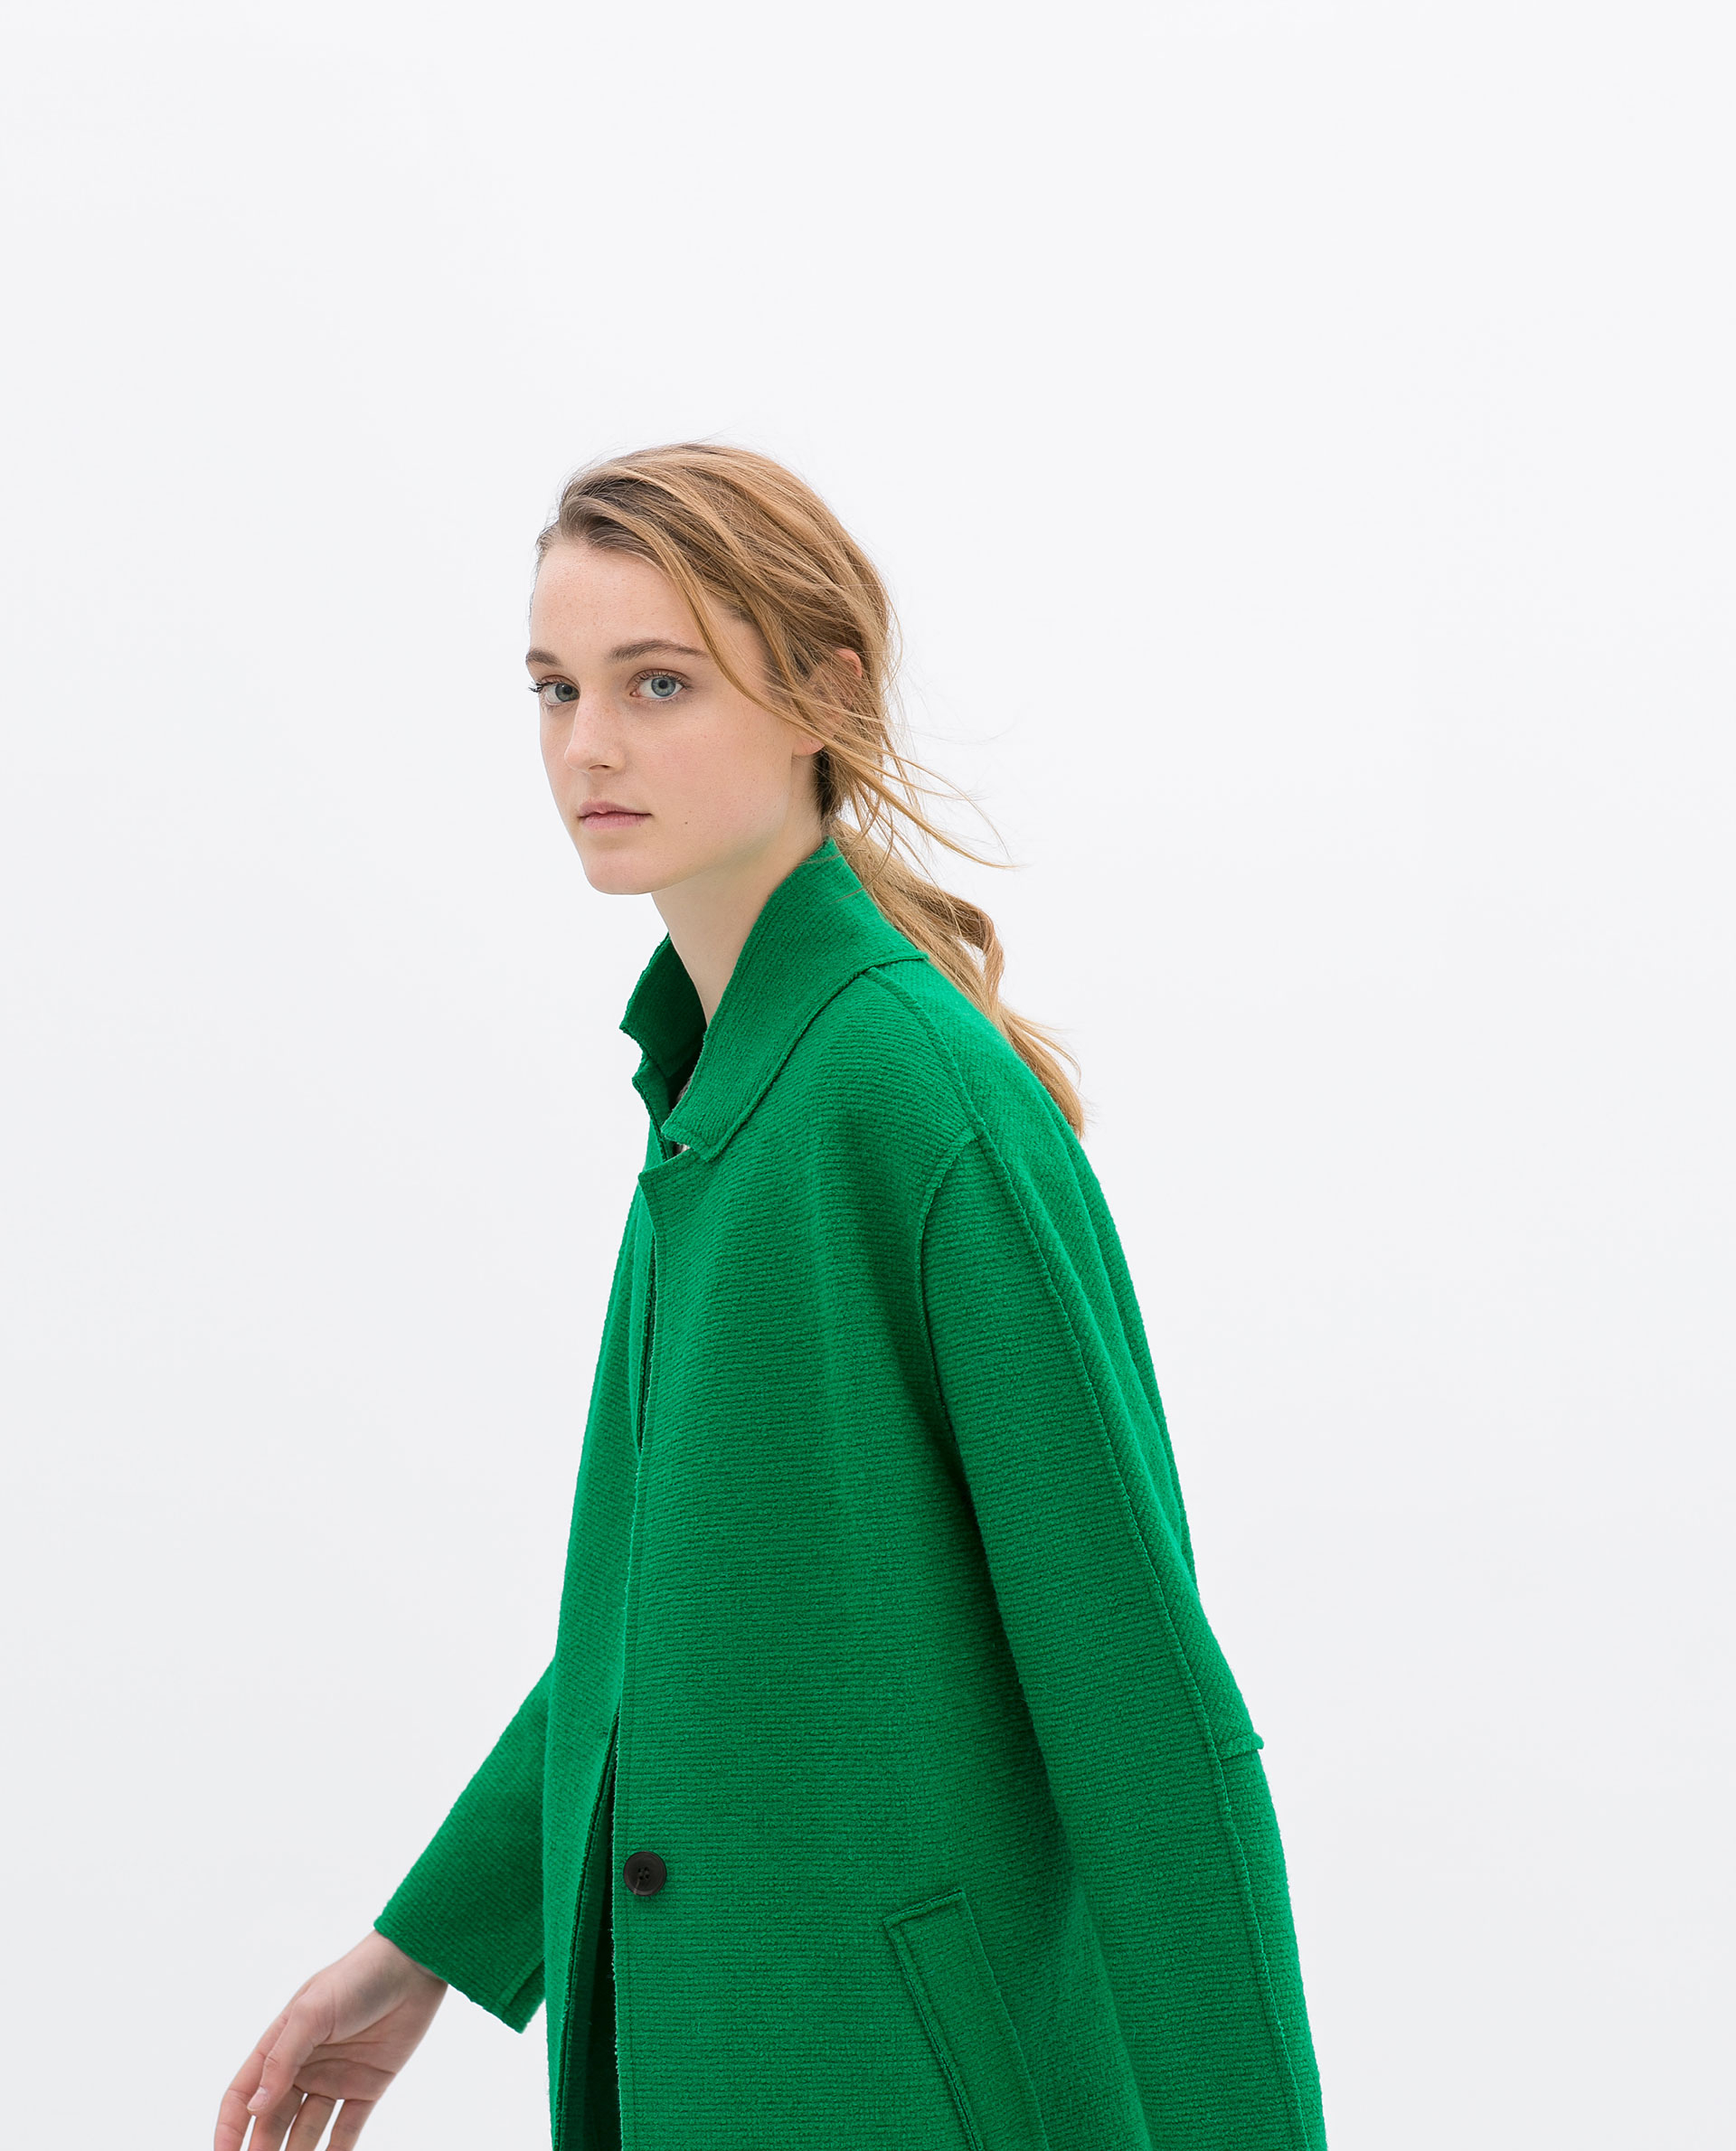 Wool coat green – Modern fashion jacket photo blog